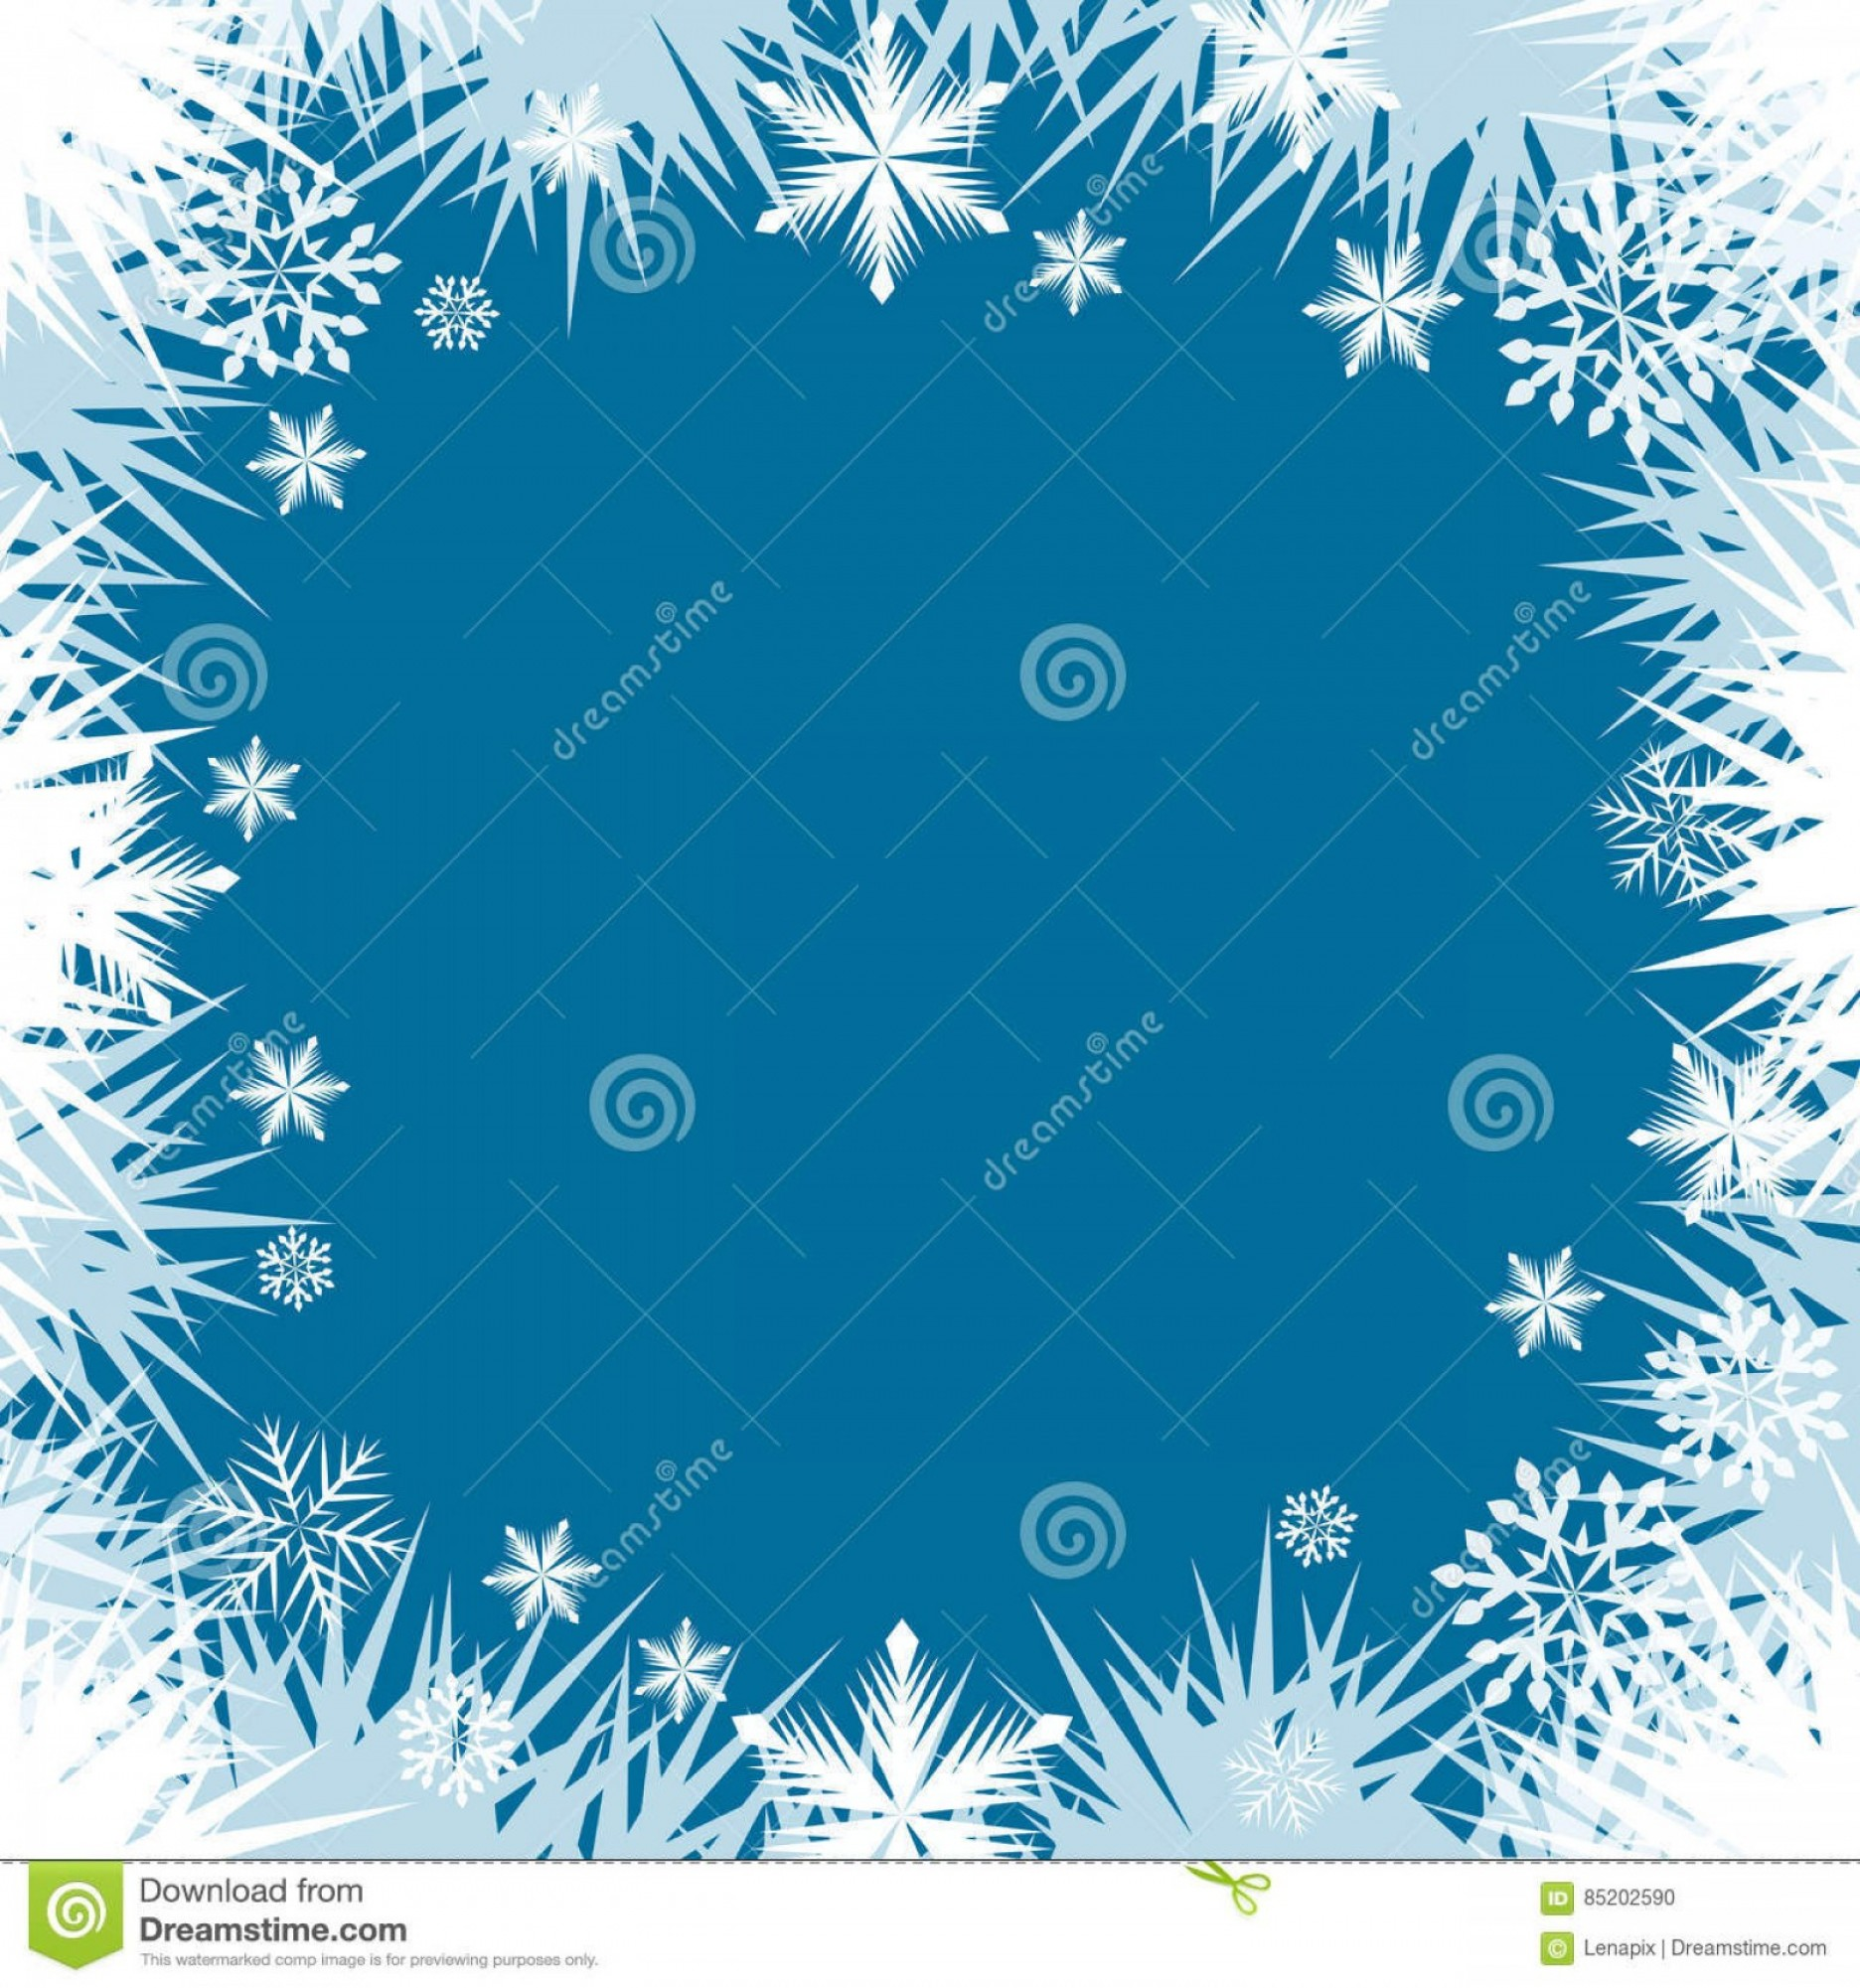 Frost Border Vector: Stock Illustration Abstract Frost Snowflake Window Border Frame Vector Background Image